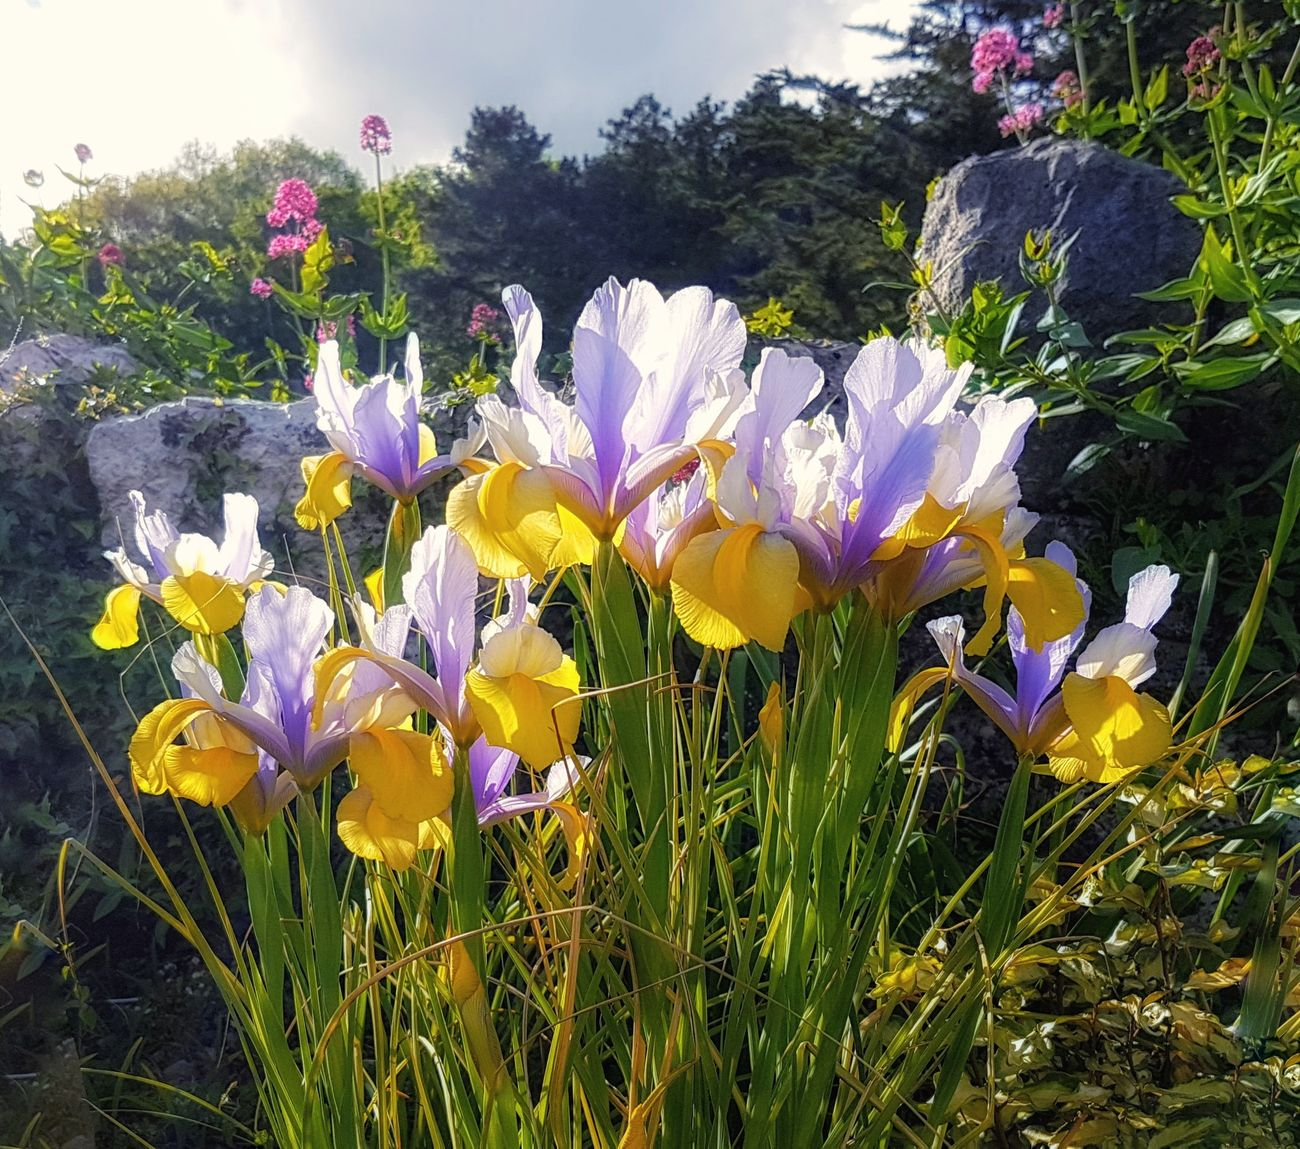 A dawn chorus of iris to wish you all a beautiful day... especially for my friend René... @creneb 🌞 Good Morning Iris Flower Nature Growth Lilac Color Yellow Color Plant Beauty In Nature Fragility No People Petal Flower Head Freshness Blooming Close-up Beauty In Nature Sunlight And Shadows Love Life ❤ EyeEm Nature Lover Live In The Moment